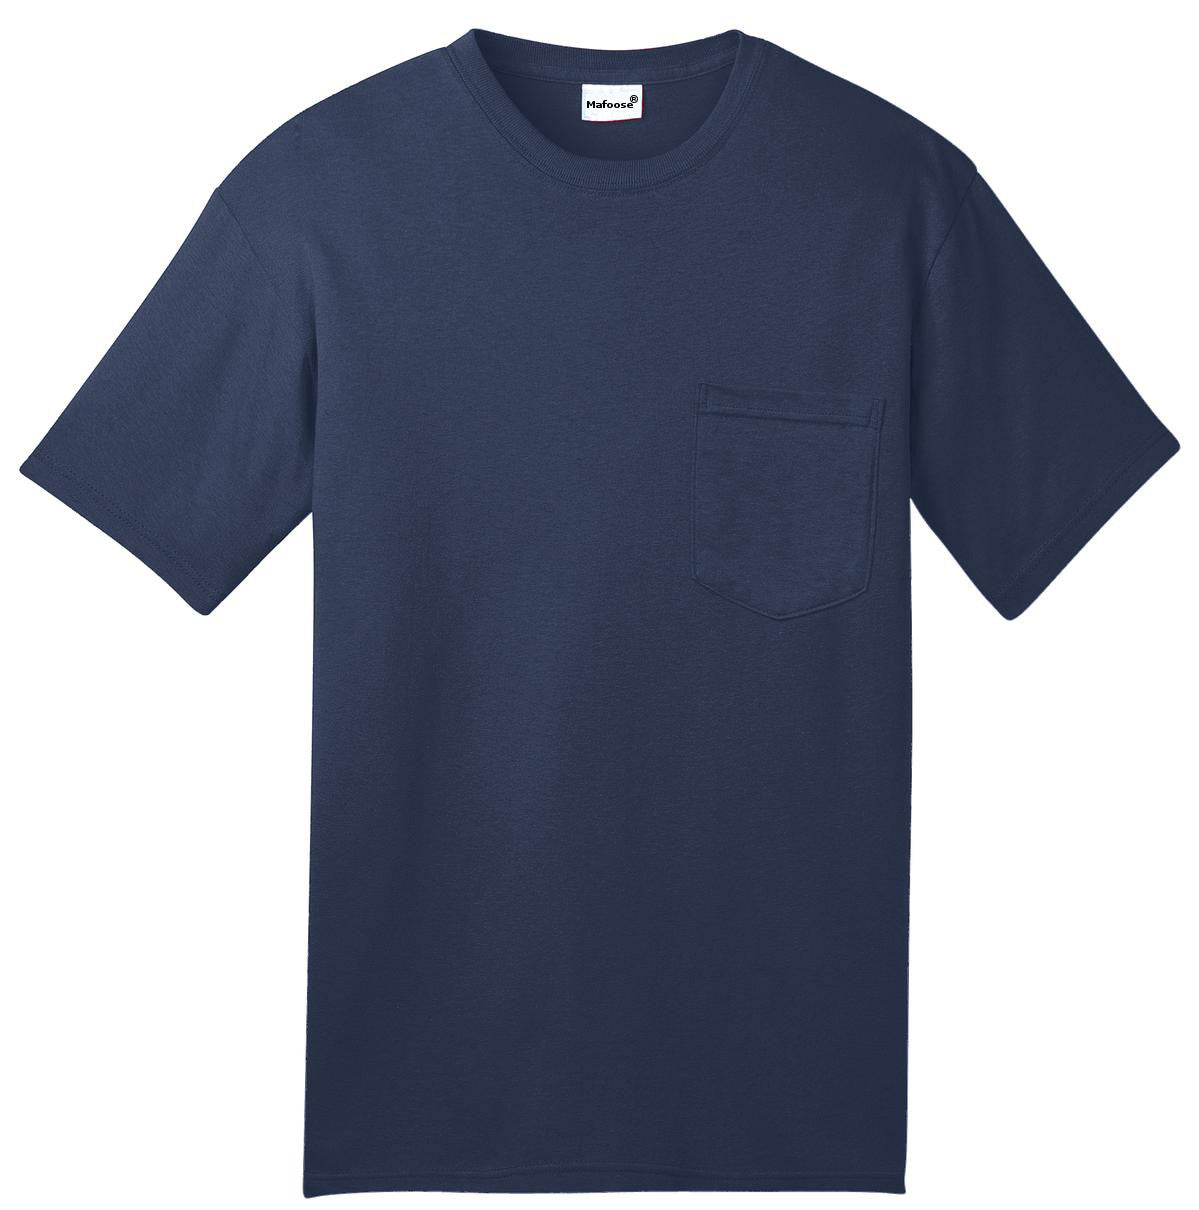 Mafoose Men's All American Tee Shirt with Pocket Navy-Front